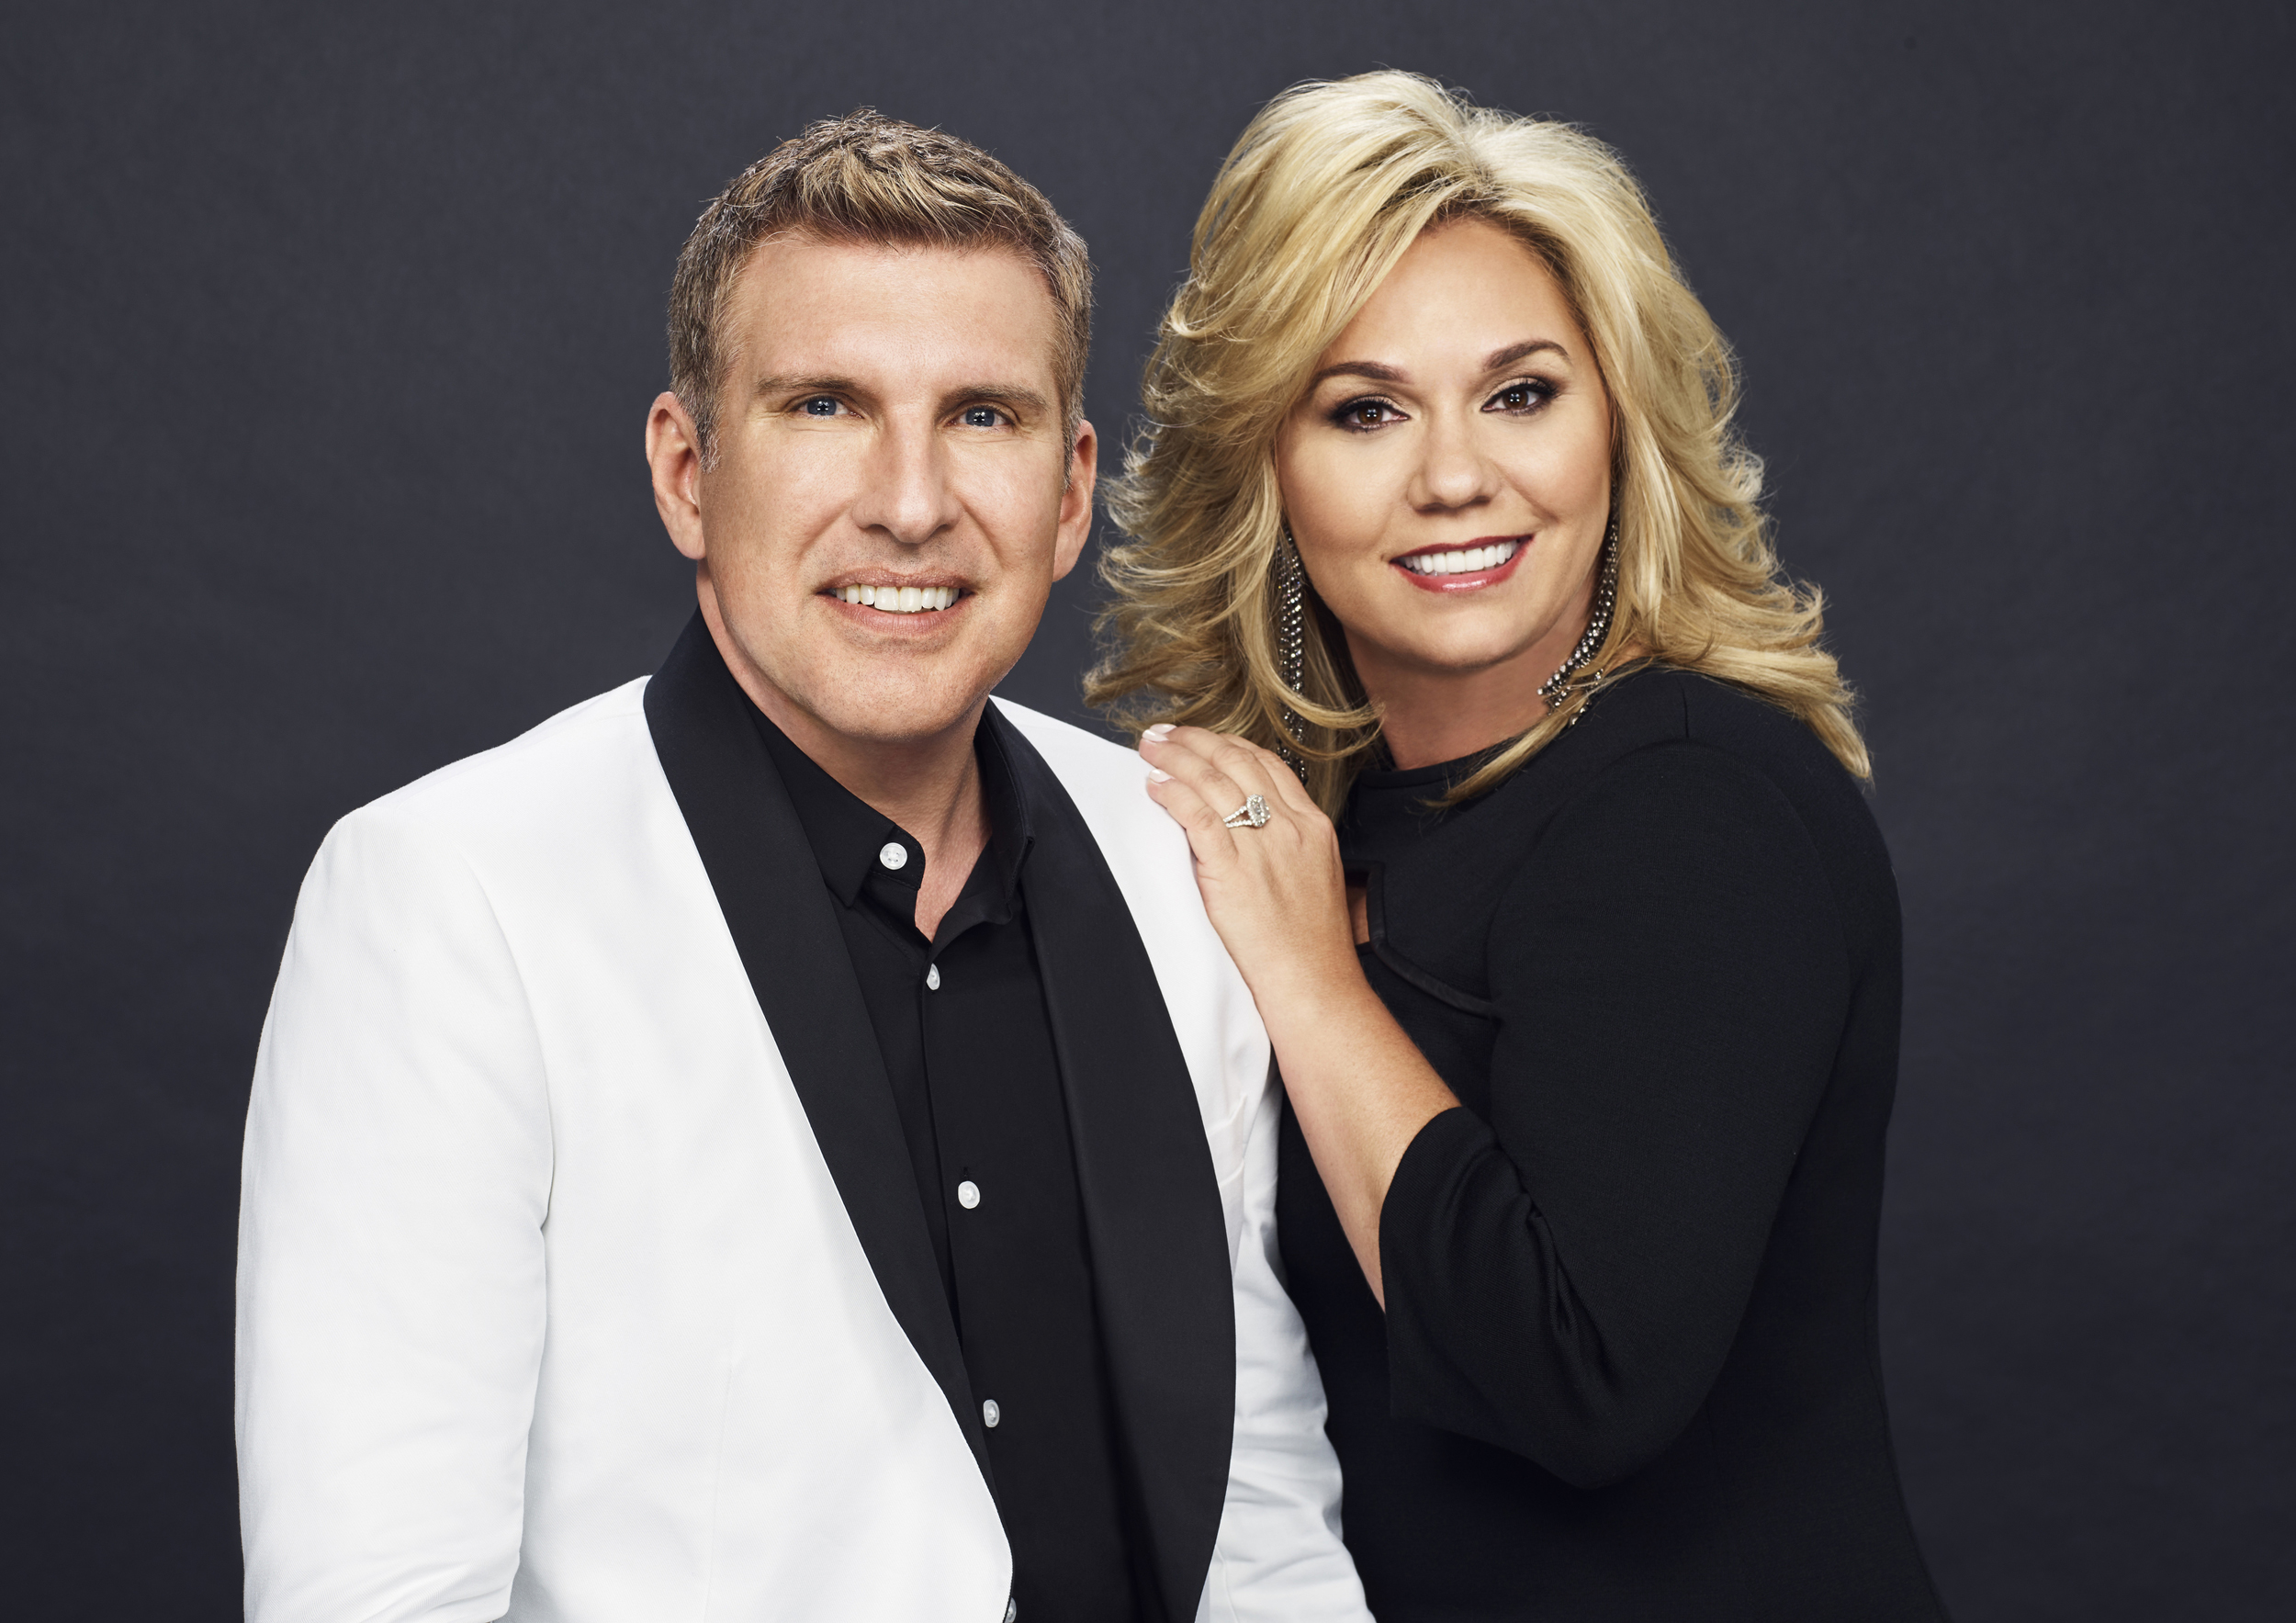 Todd Chrisley Ate his heart Out Over this Smithsonian Reality Star!